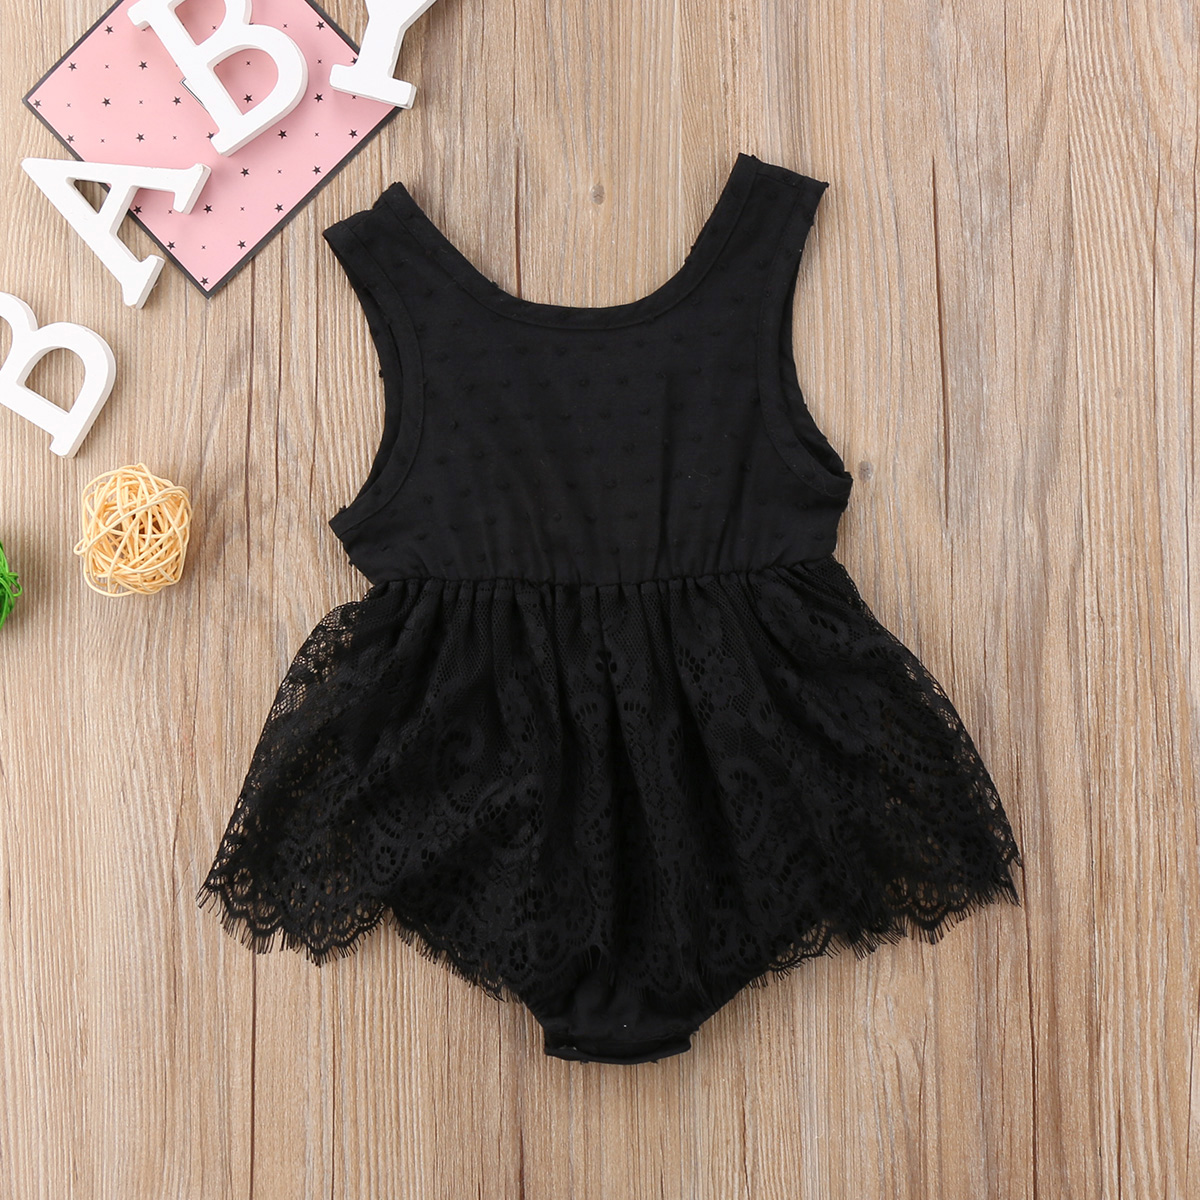 pudcoco Baby Girls Infant Newborn Lace Tutu Summer Clothes